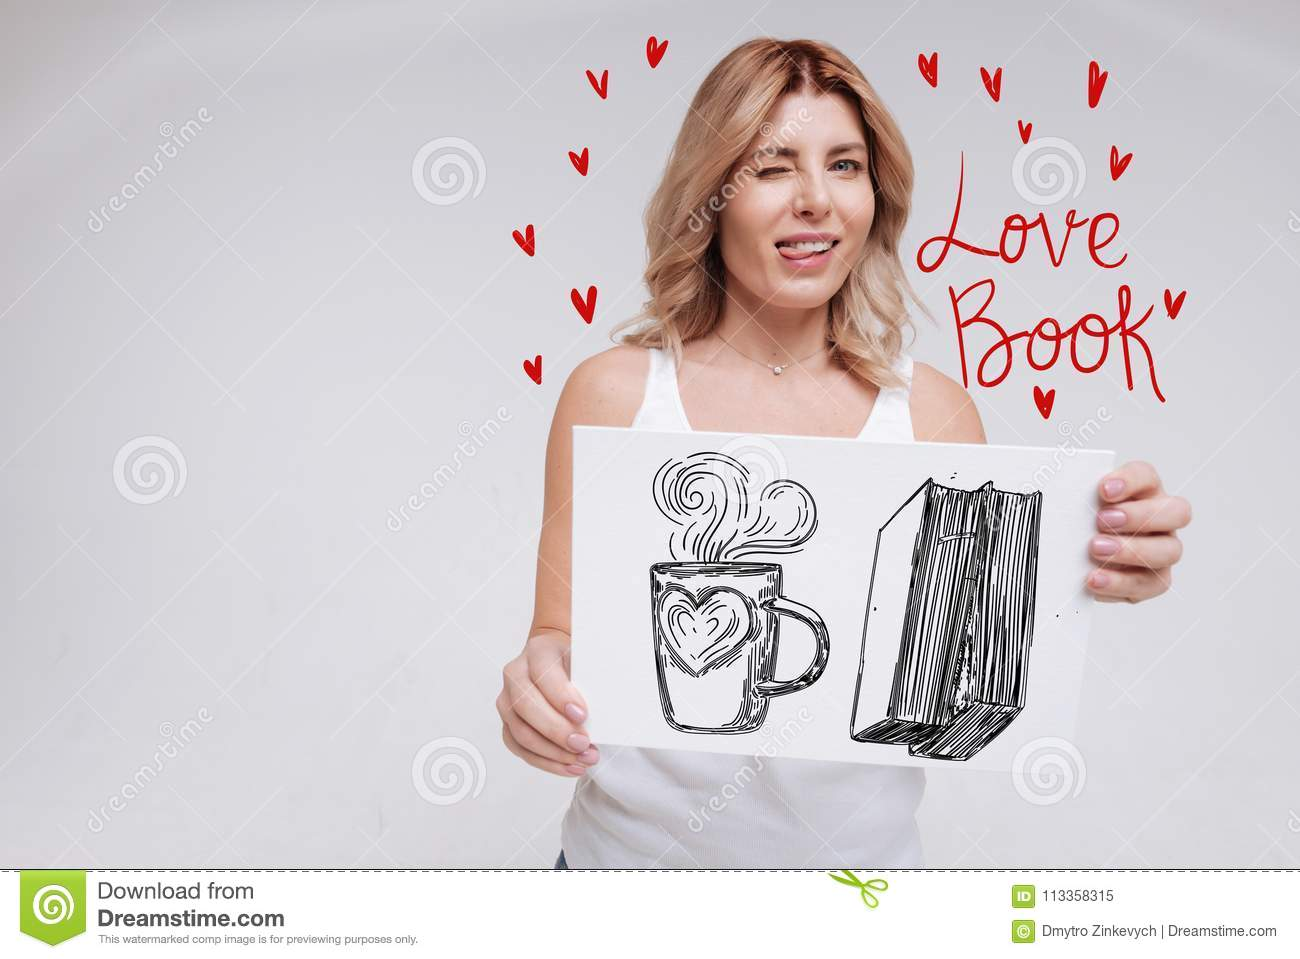 Cute woman biting her tongue while remembering a nice love book